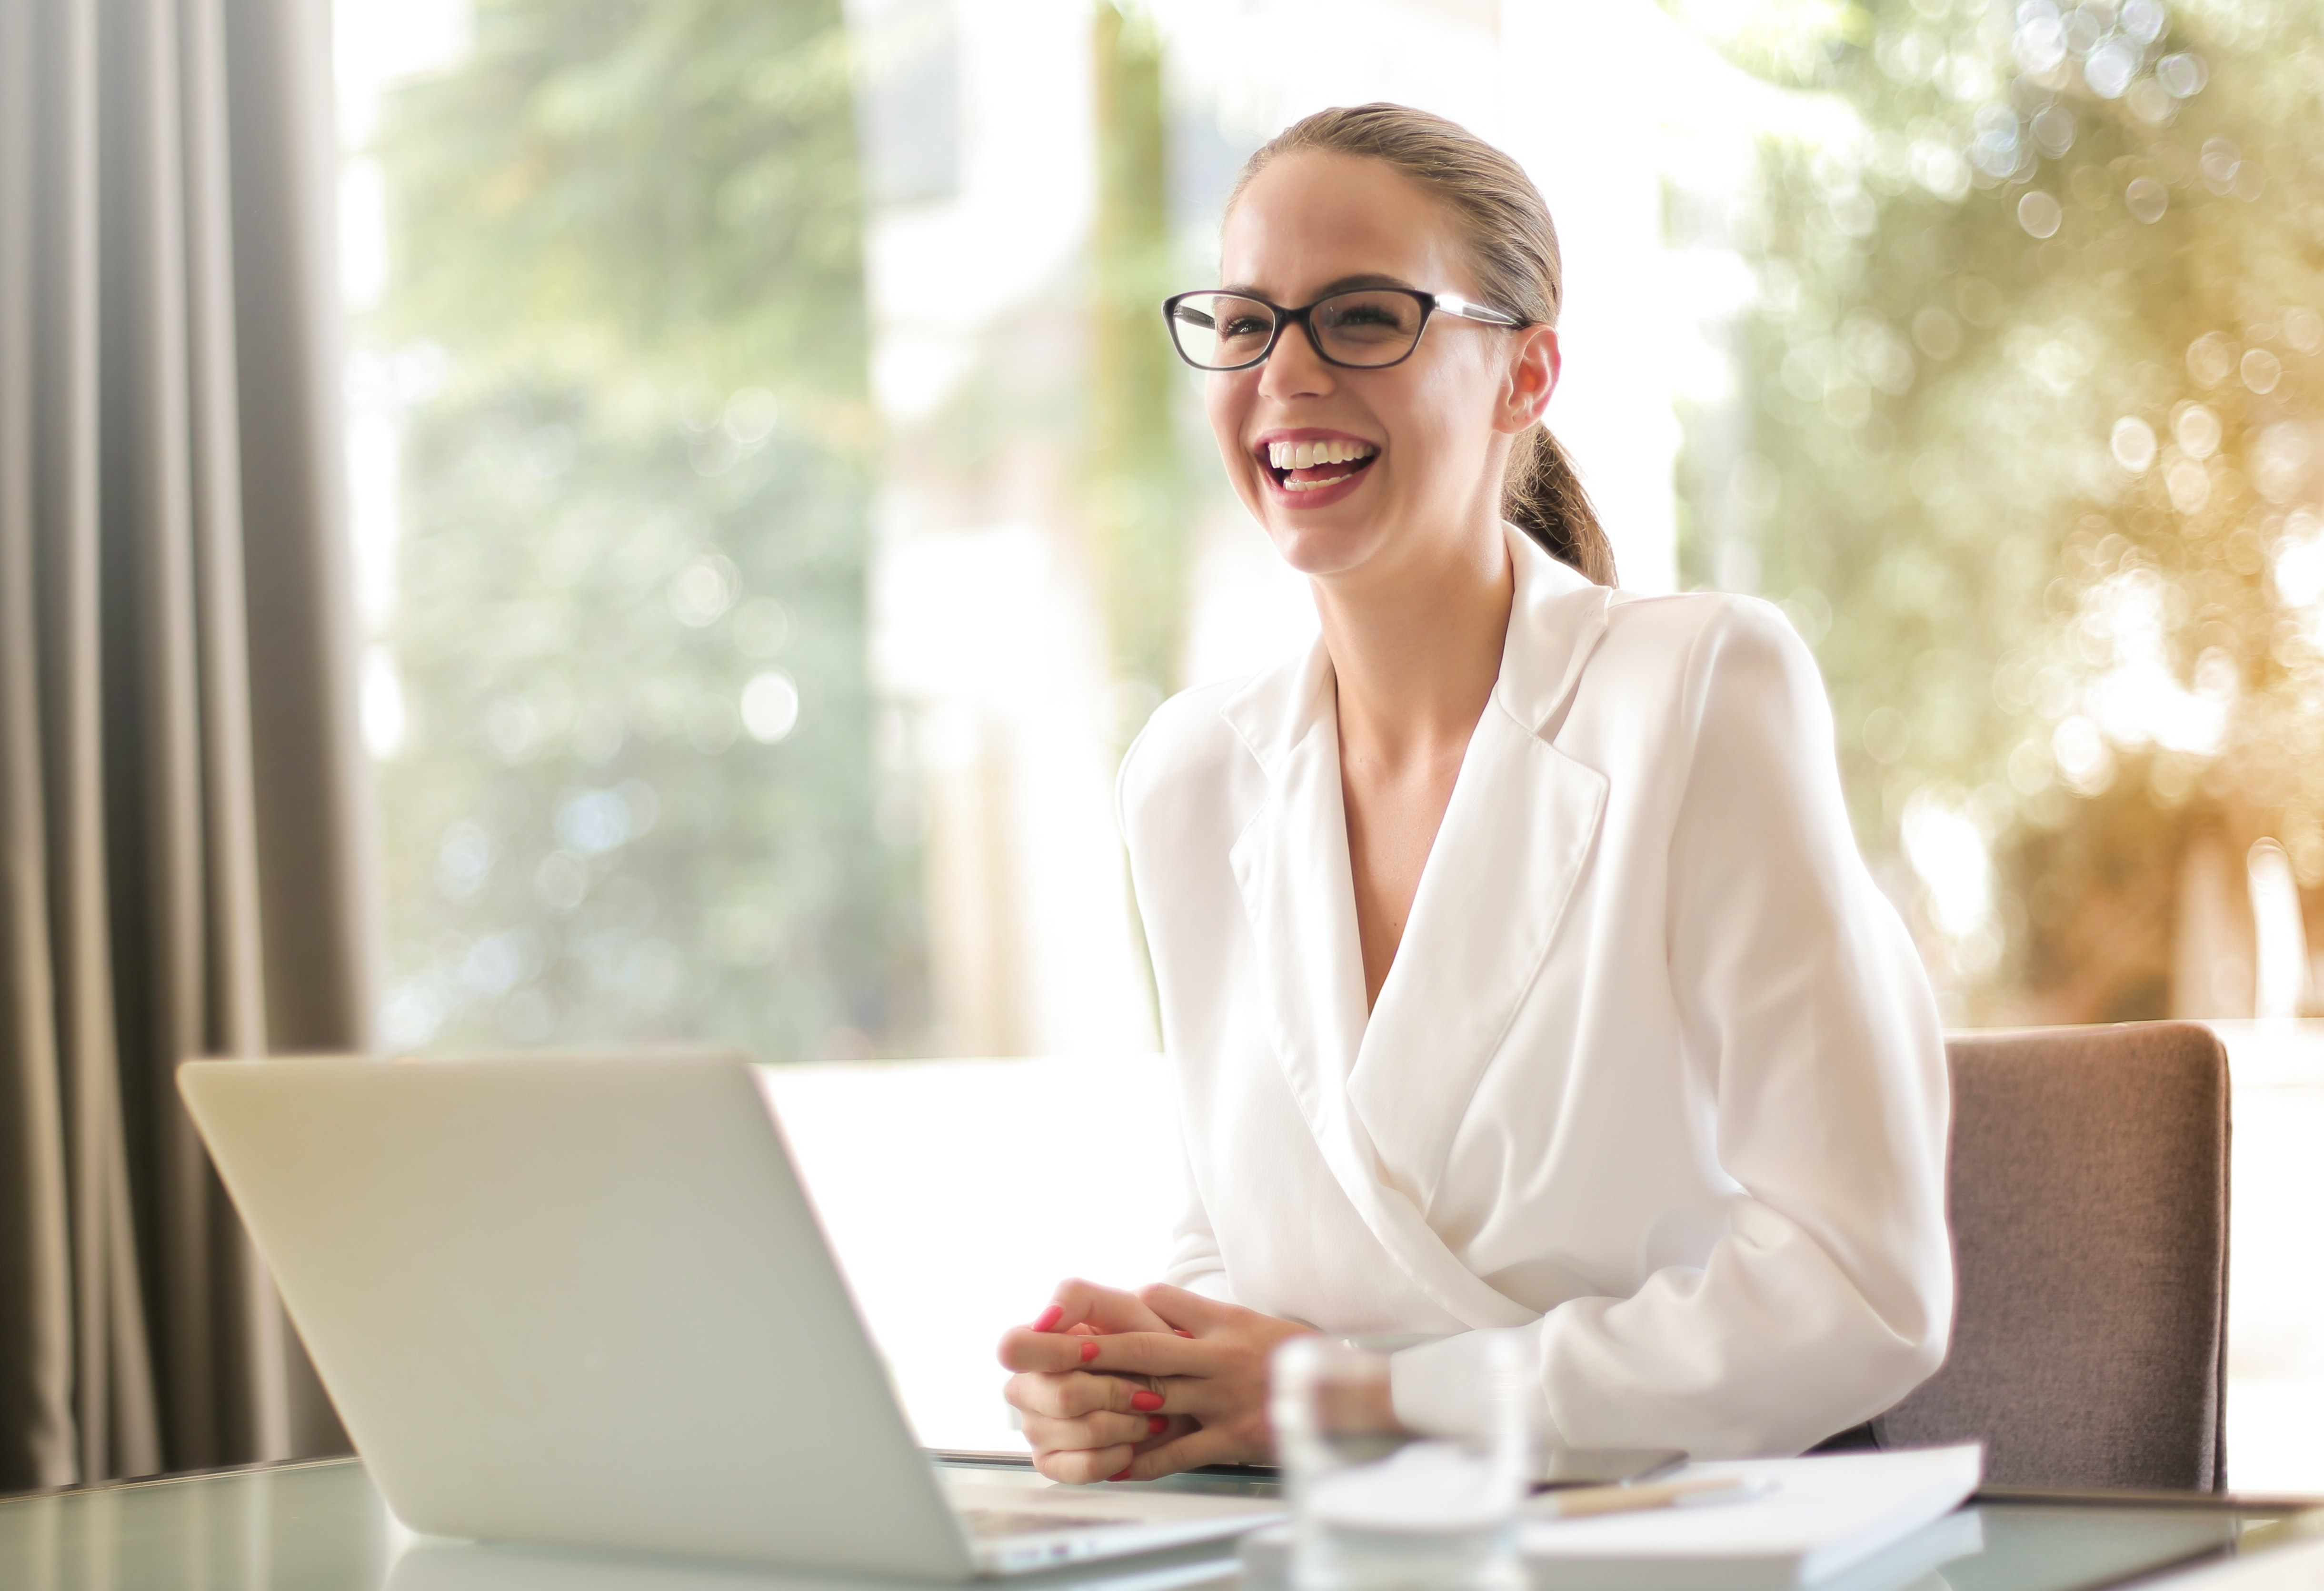 How to Host a Virtual Job Fair & Attract the Right Candidates